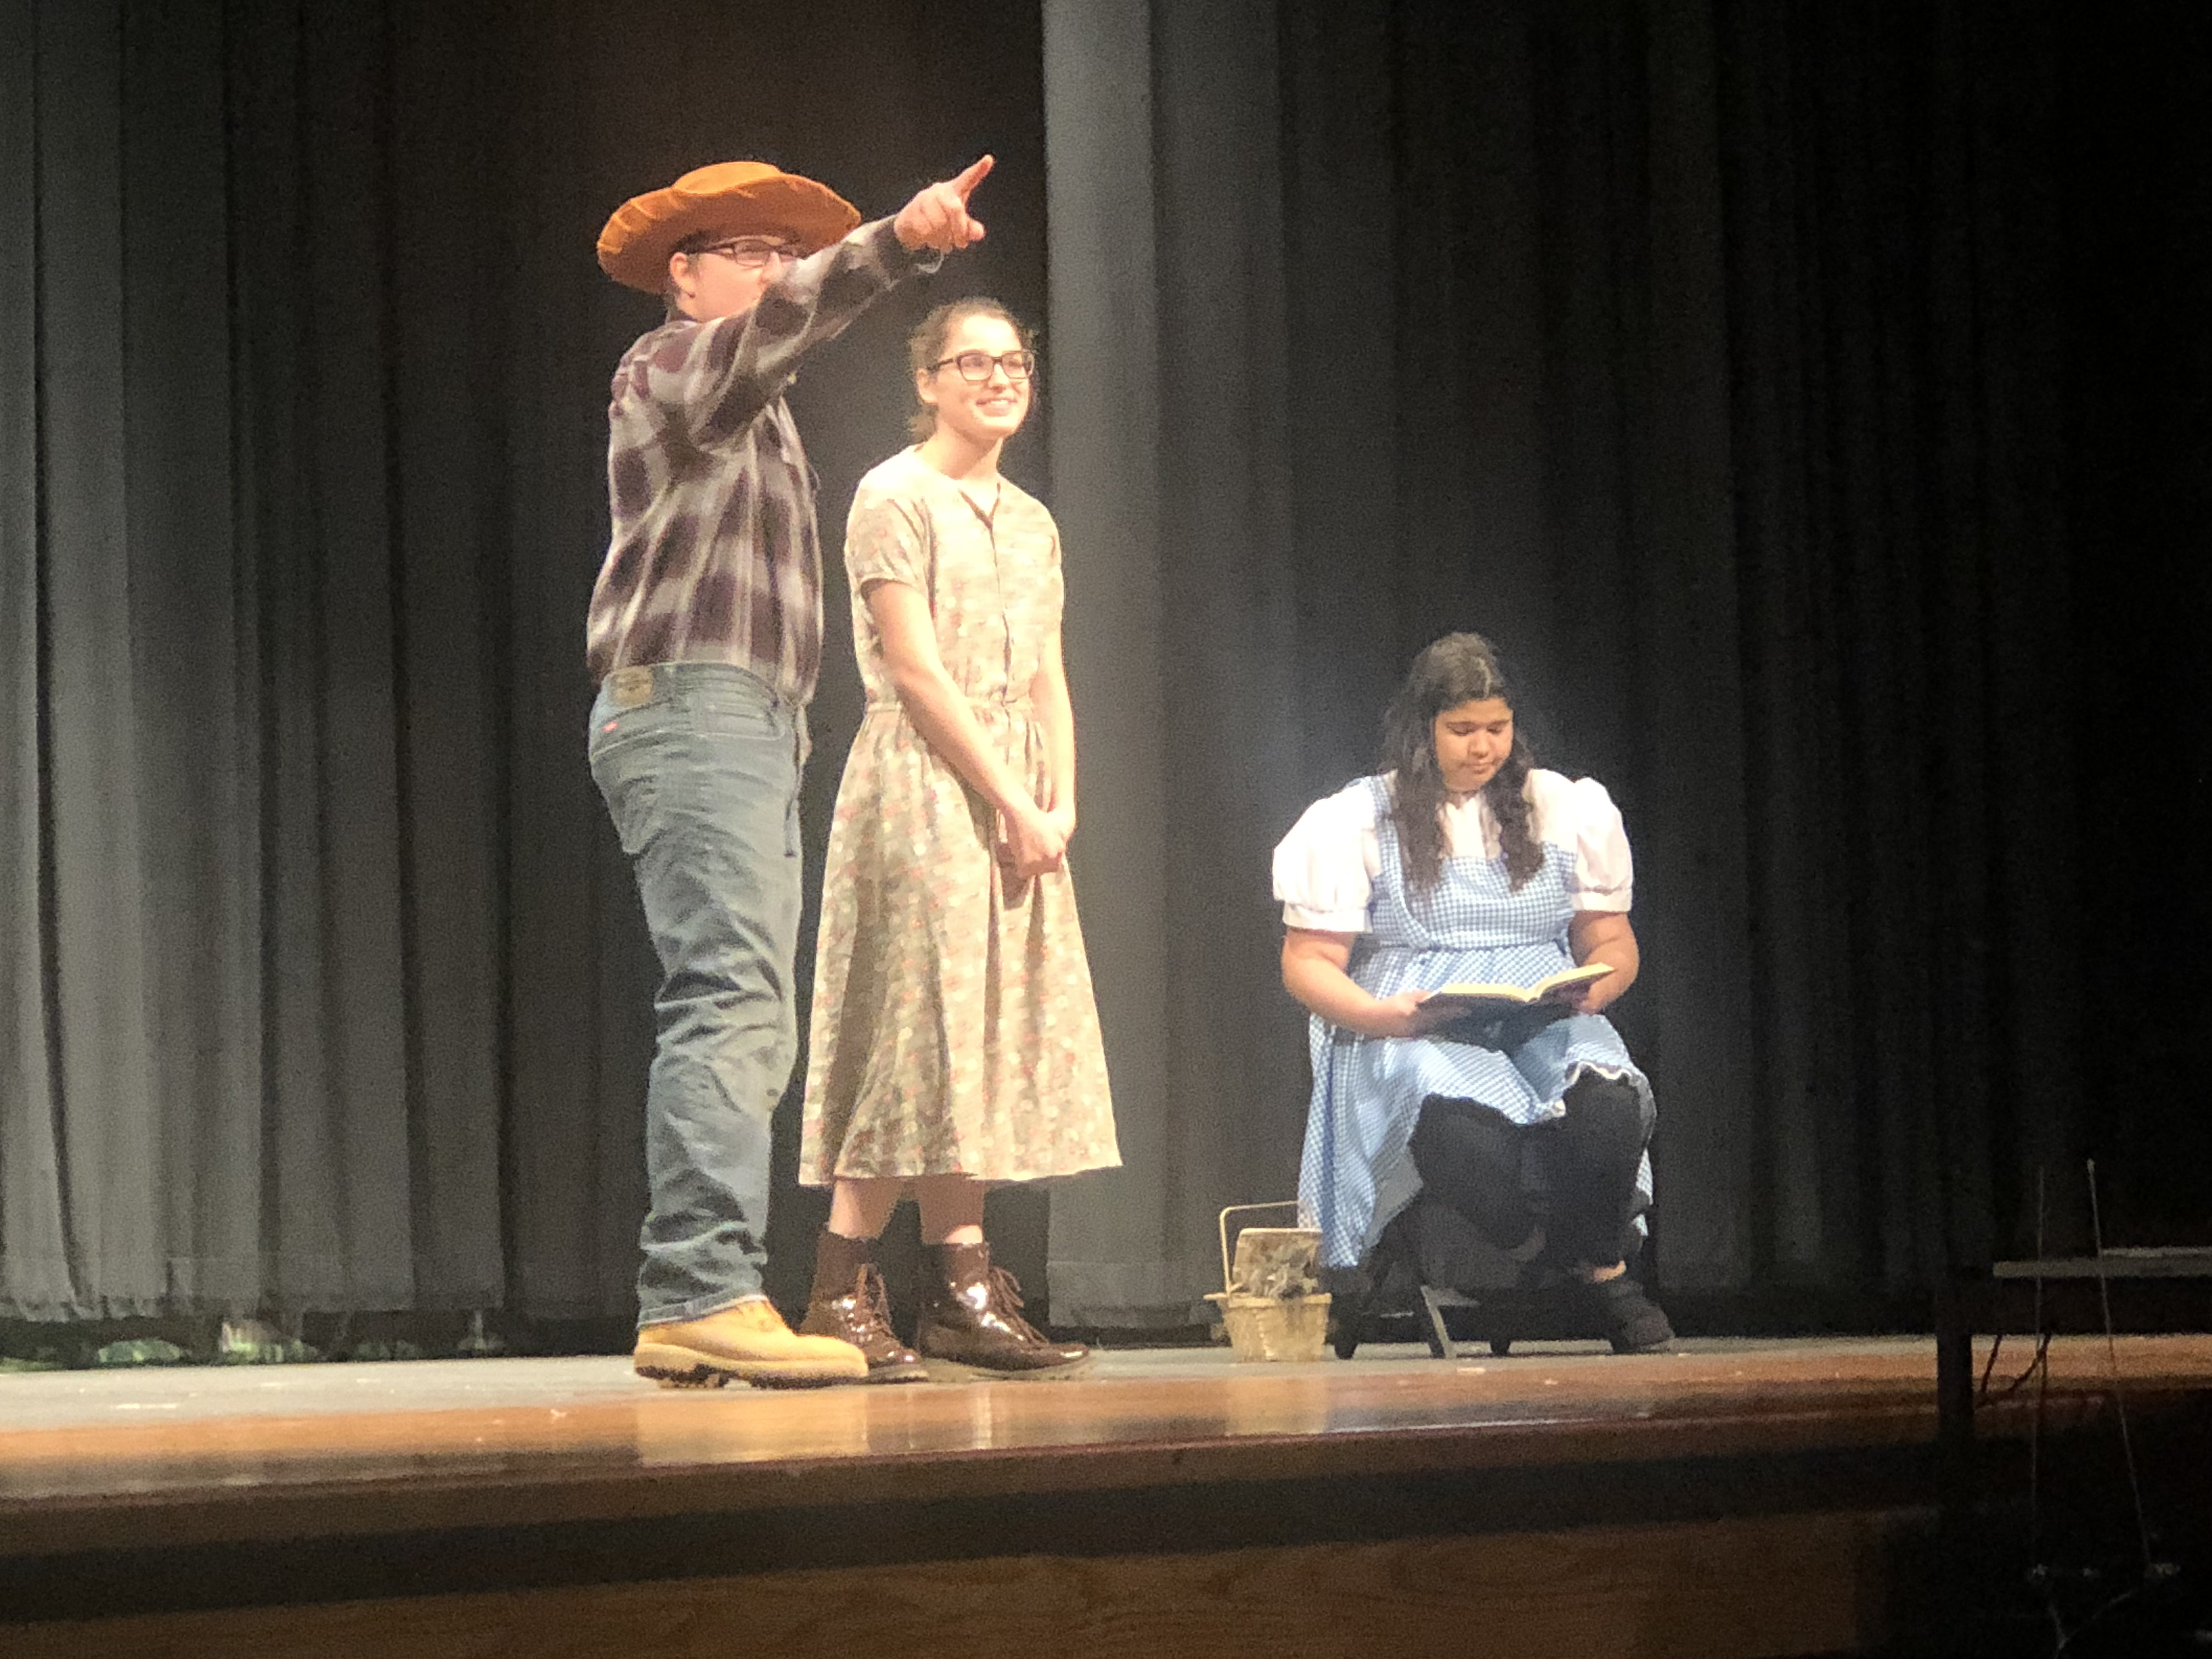 The drama department perform The Wonderful Wizard of Oz by Michelle Vacca